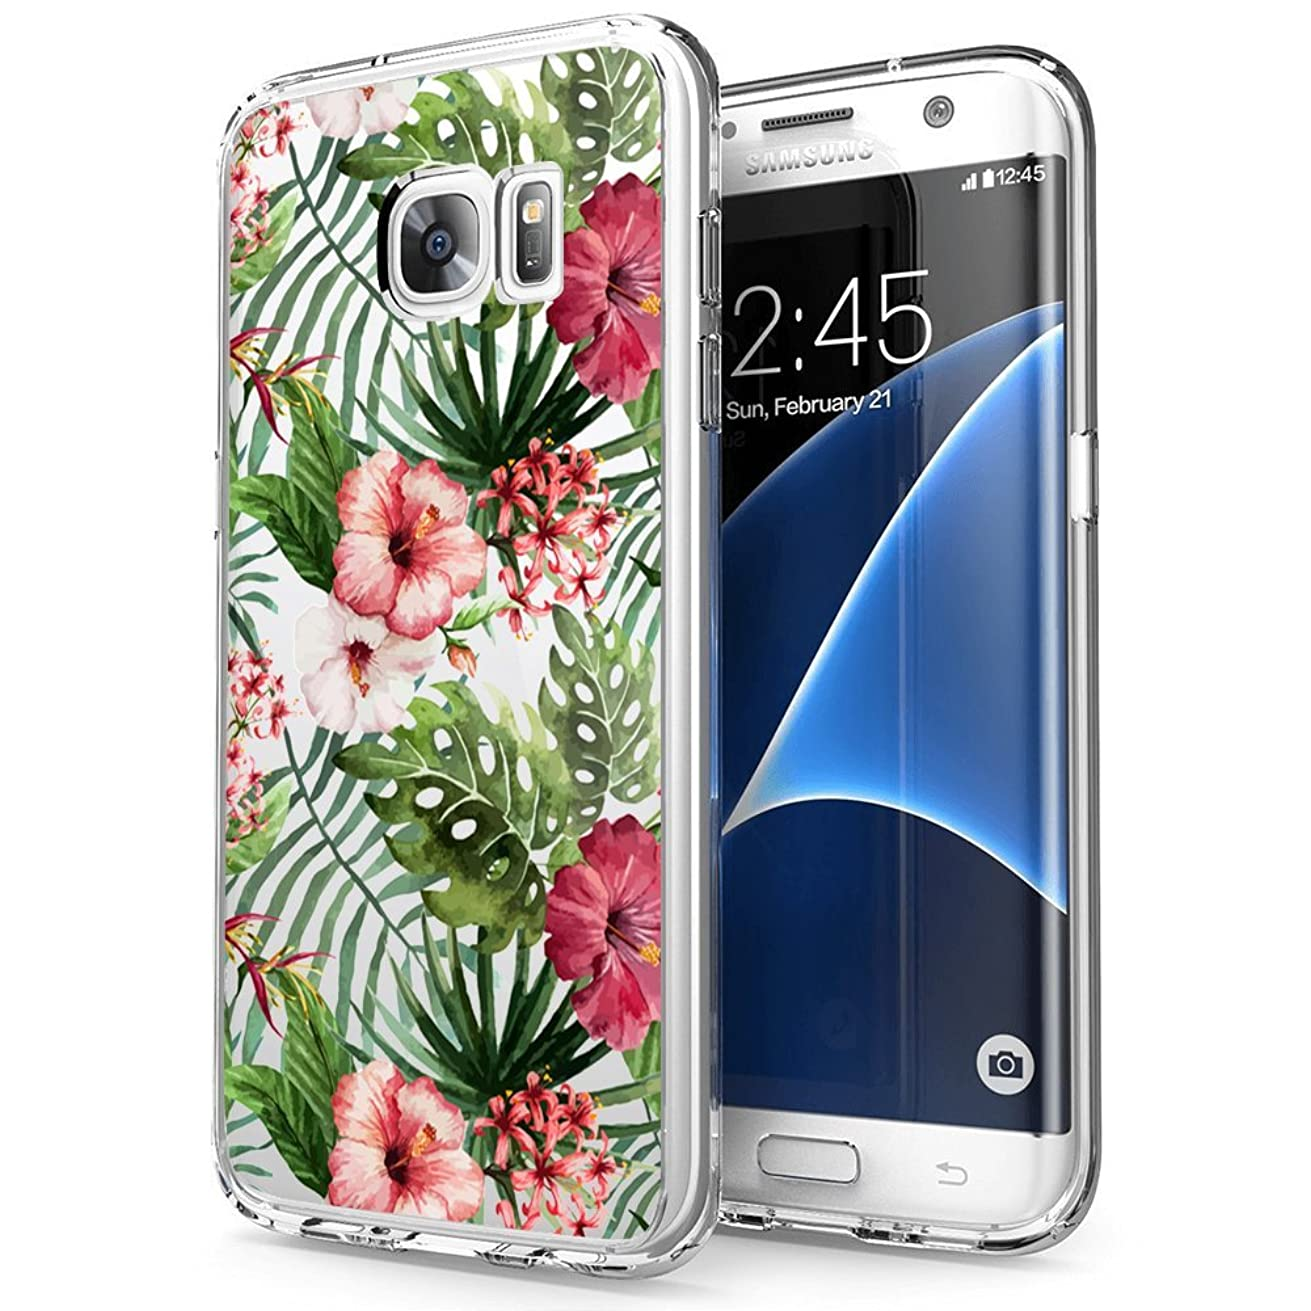 hekui Clear Phone Cover Skin, Ultra Durable Shock-Absorption Anti-slip Protection Scratch Resistant Shell Case for Samsung Galaxy S7, Tropical Patterns Pattern